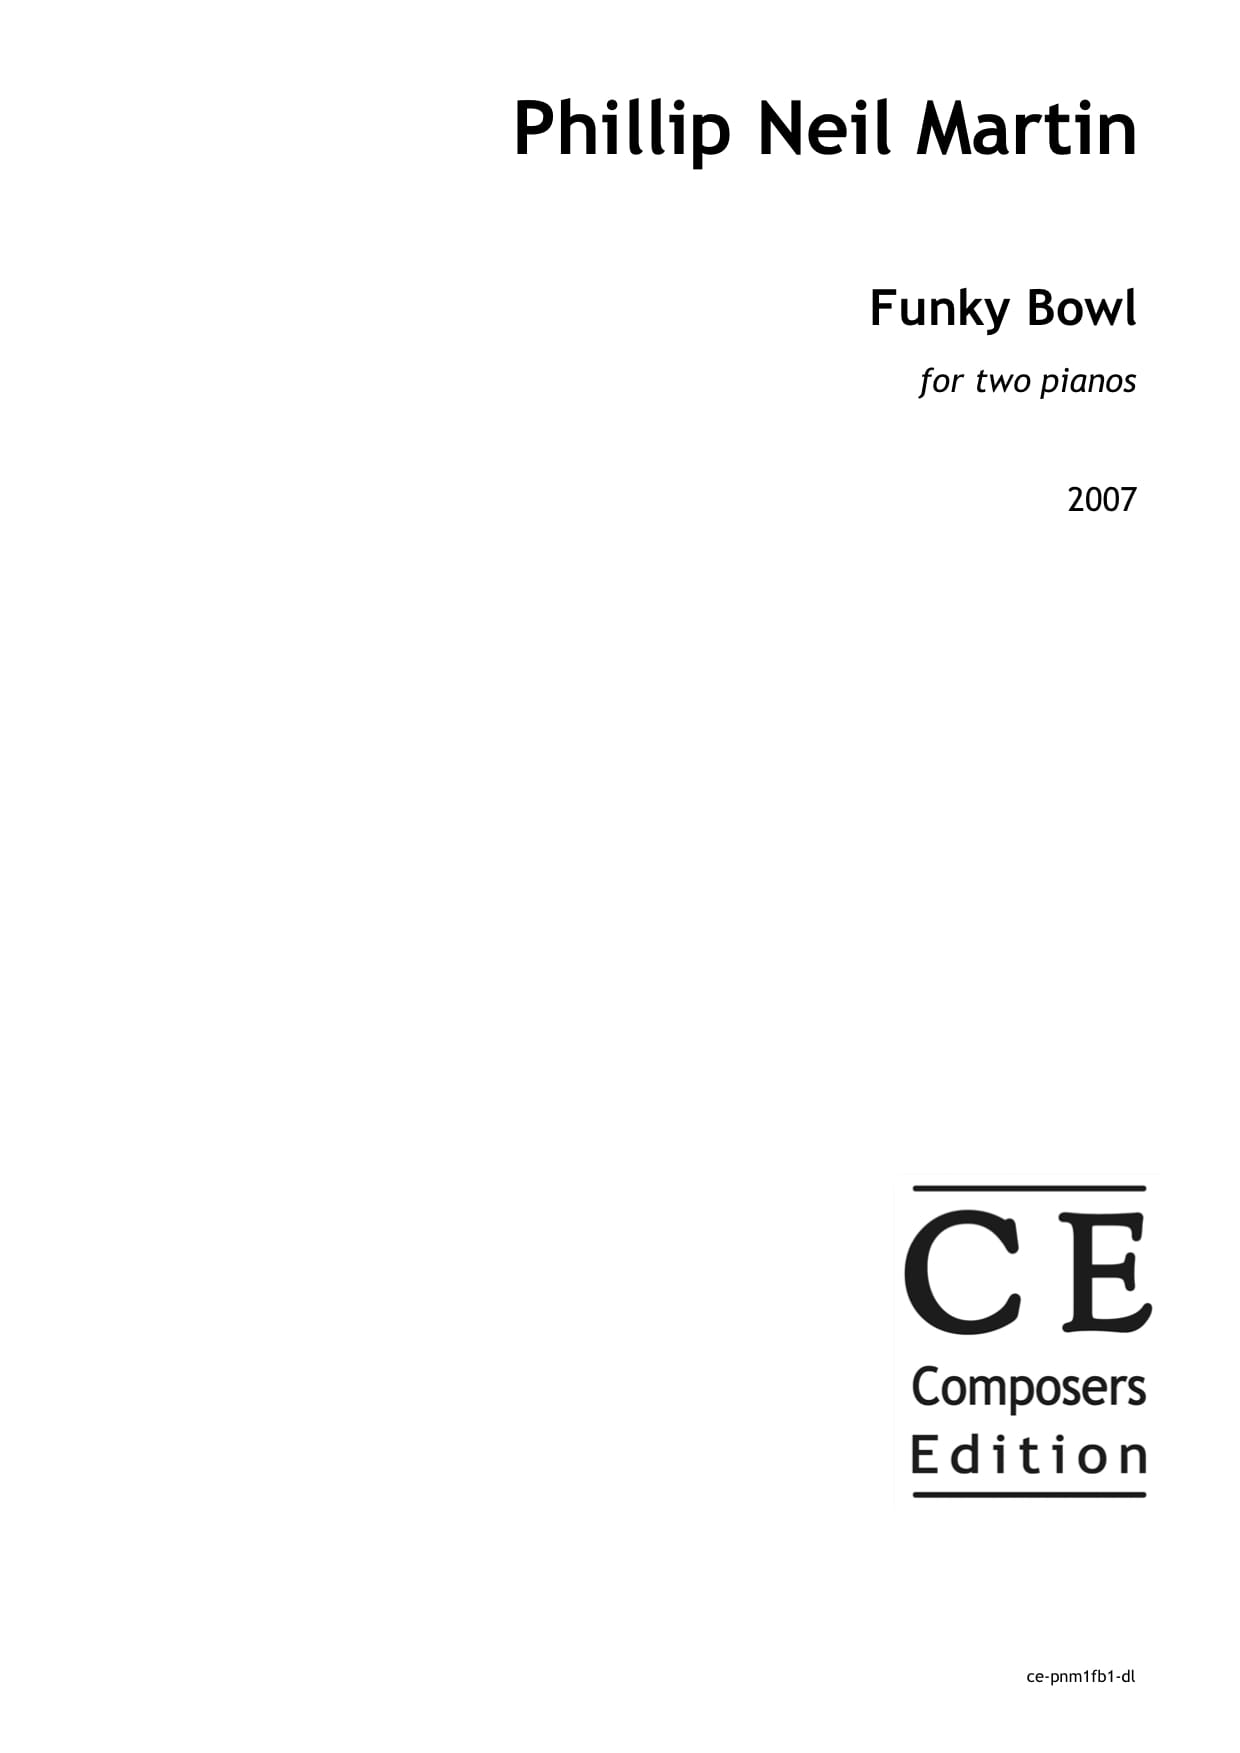 Phillip Neil Martin: Funky Bowl for two pianos